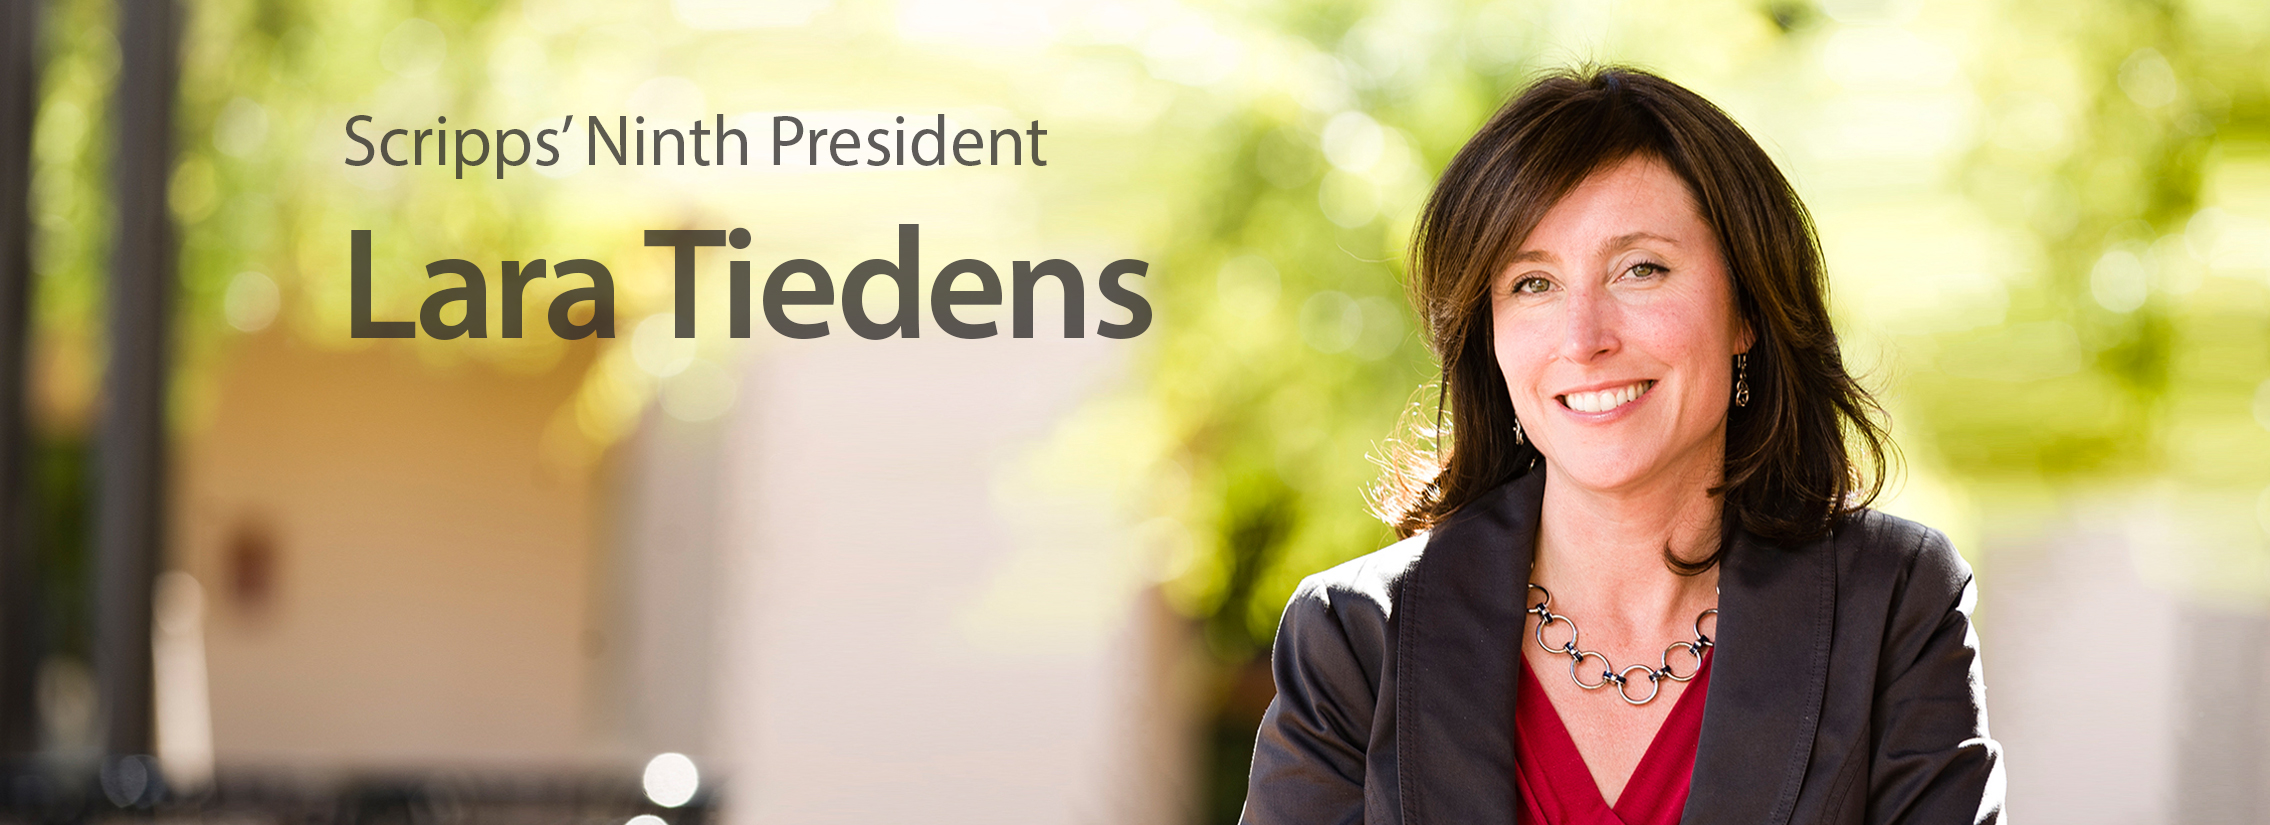 President Lara Tiedens Lara Tiedens was appointed the ninth president of Scripps College on June 21, 2016, by a unanimous vote of the College's Board of Trustees. As president, she holds the title of the W.M. Keck Presidential Chair, established in 1980. Tiedens was a senior associate dean of academic affairs and faculty member of […]